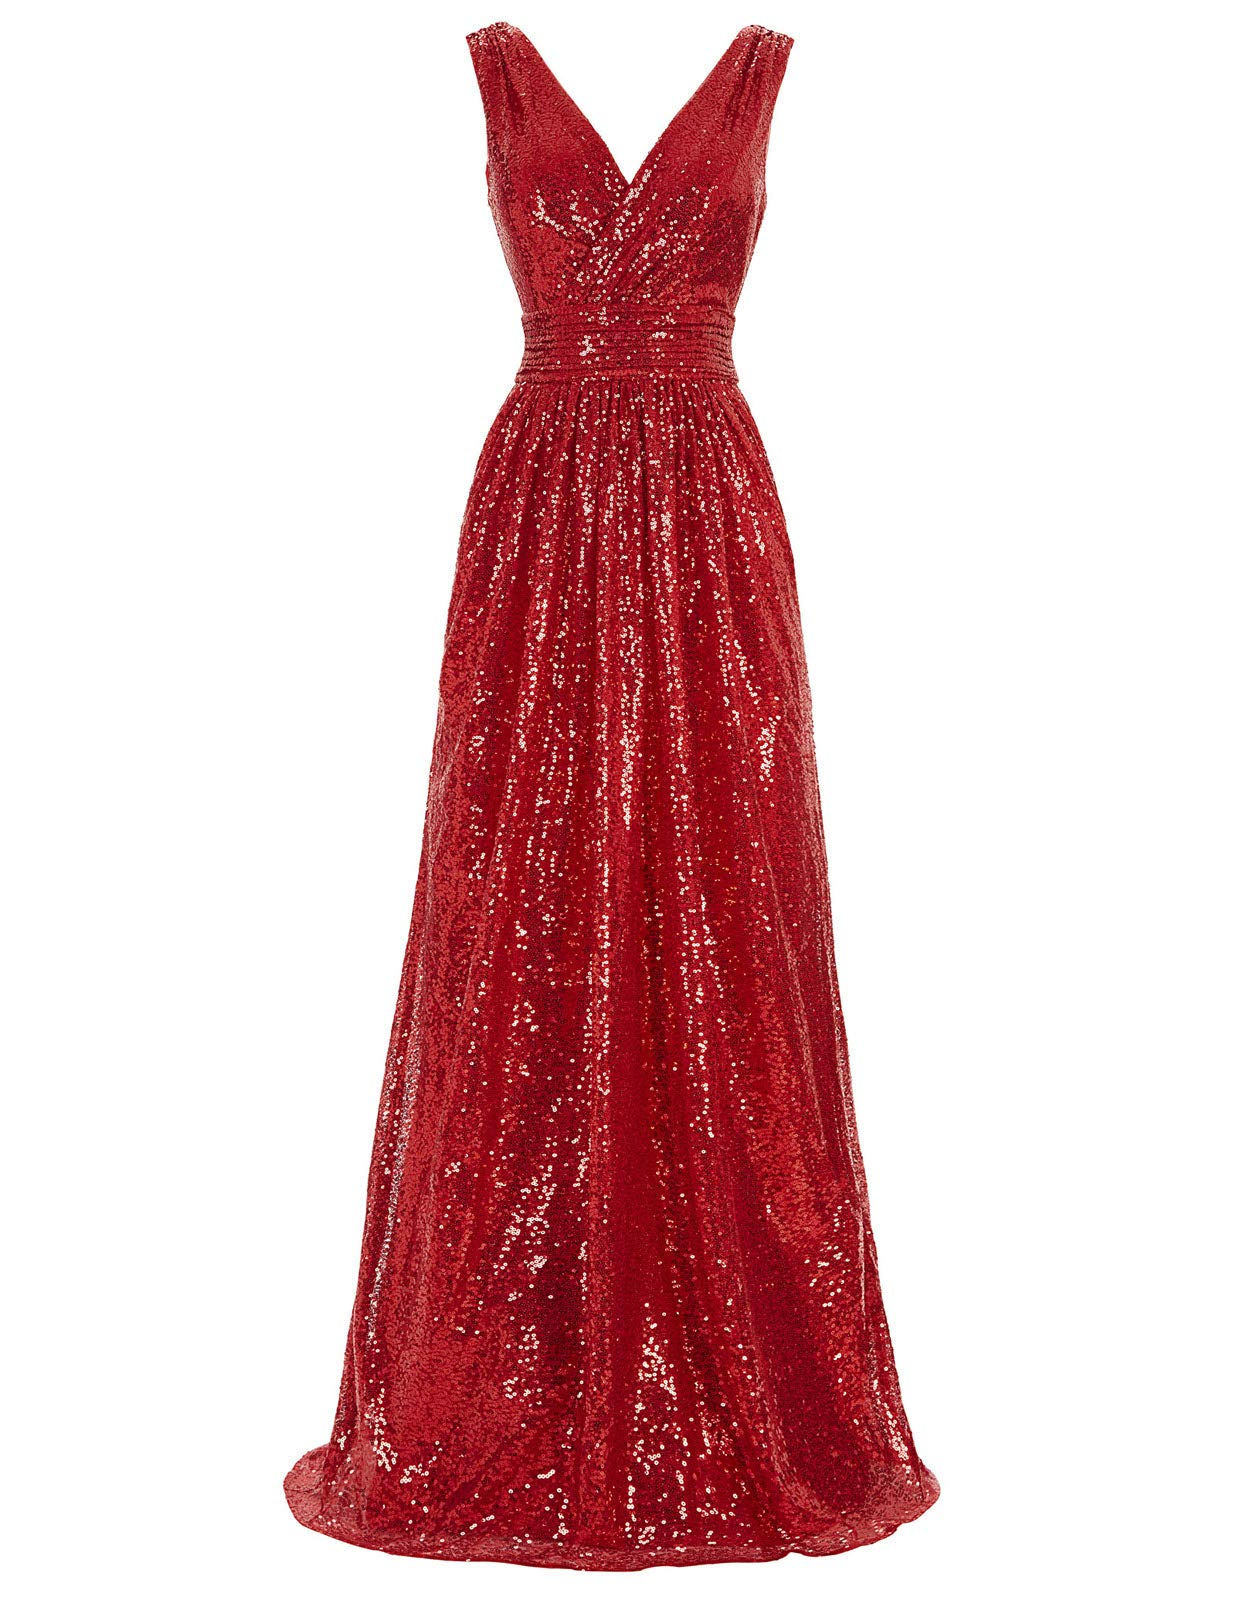 Red Dress - Women's Formal Floral Lace Evening Party Maxi Dress